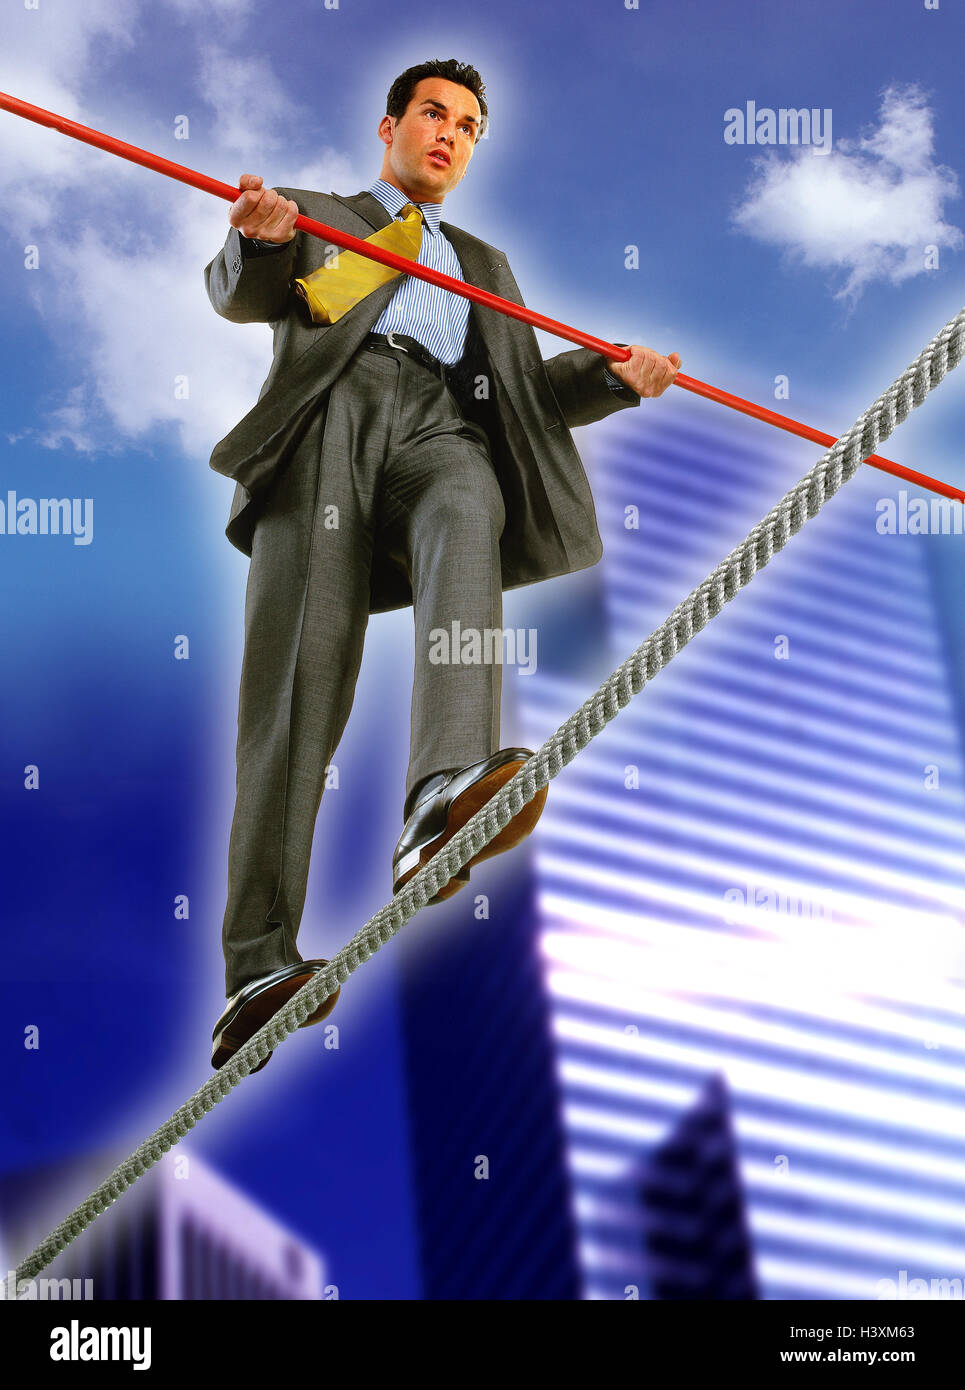 Composing, town, businessman, wire rope, balance, cloudy sky, professions, man, artiste, high rope act, balancing - Stock Image